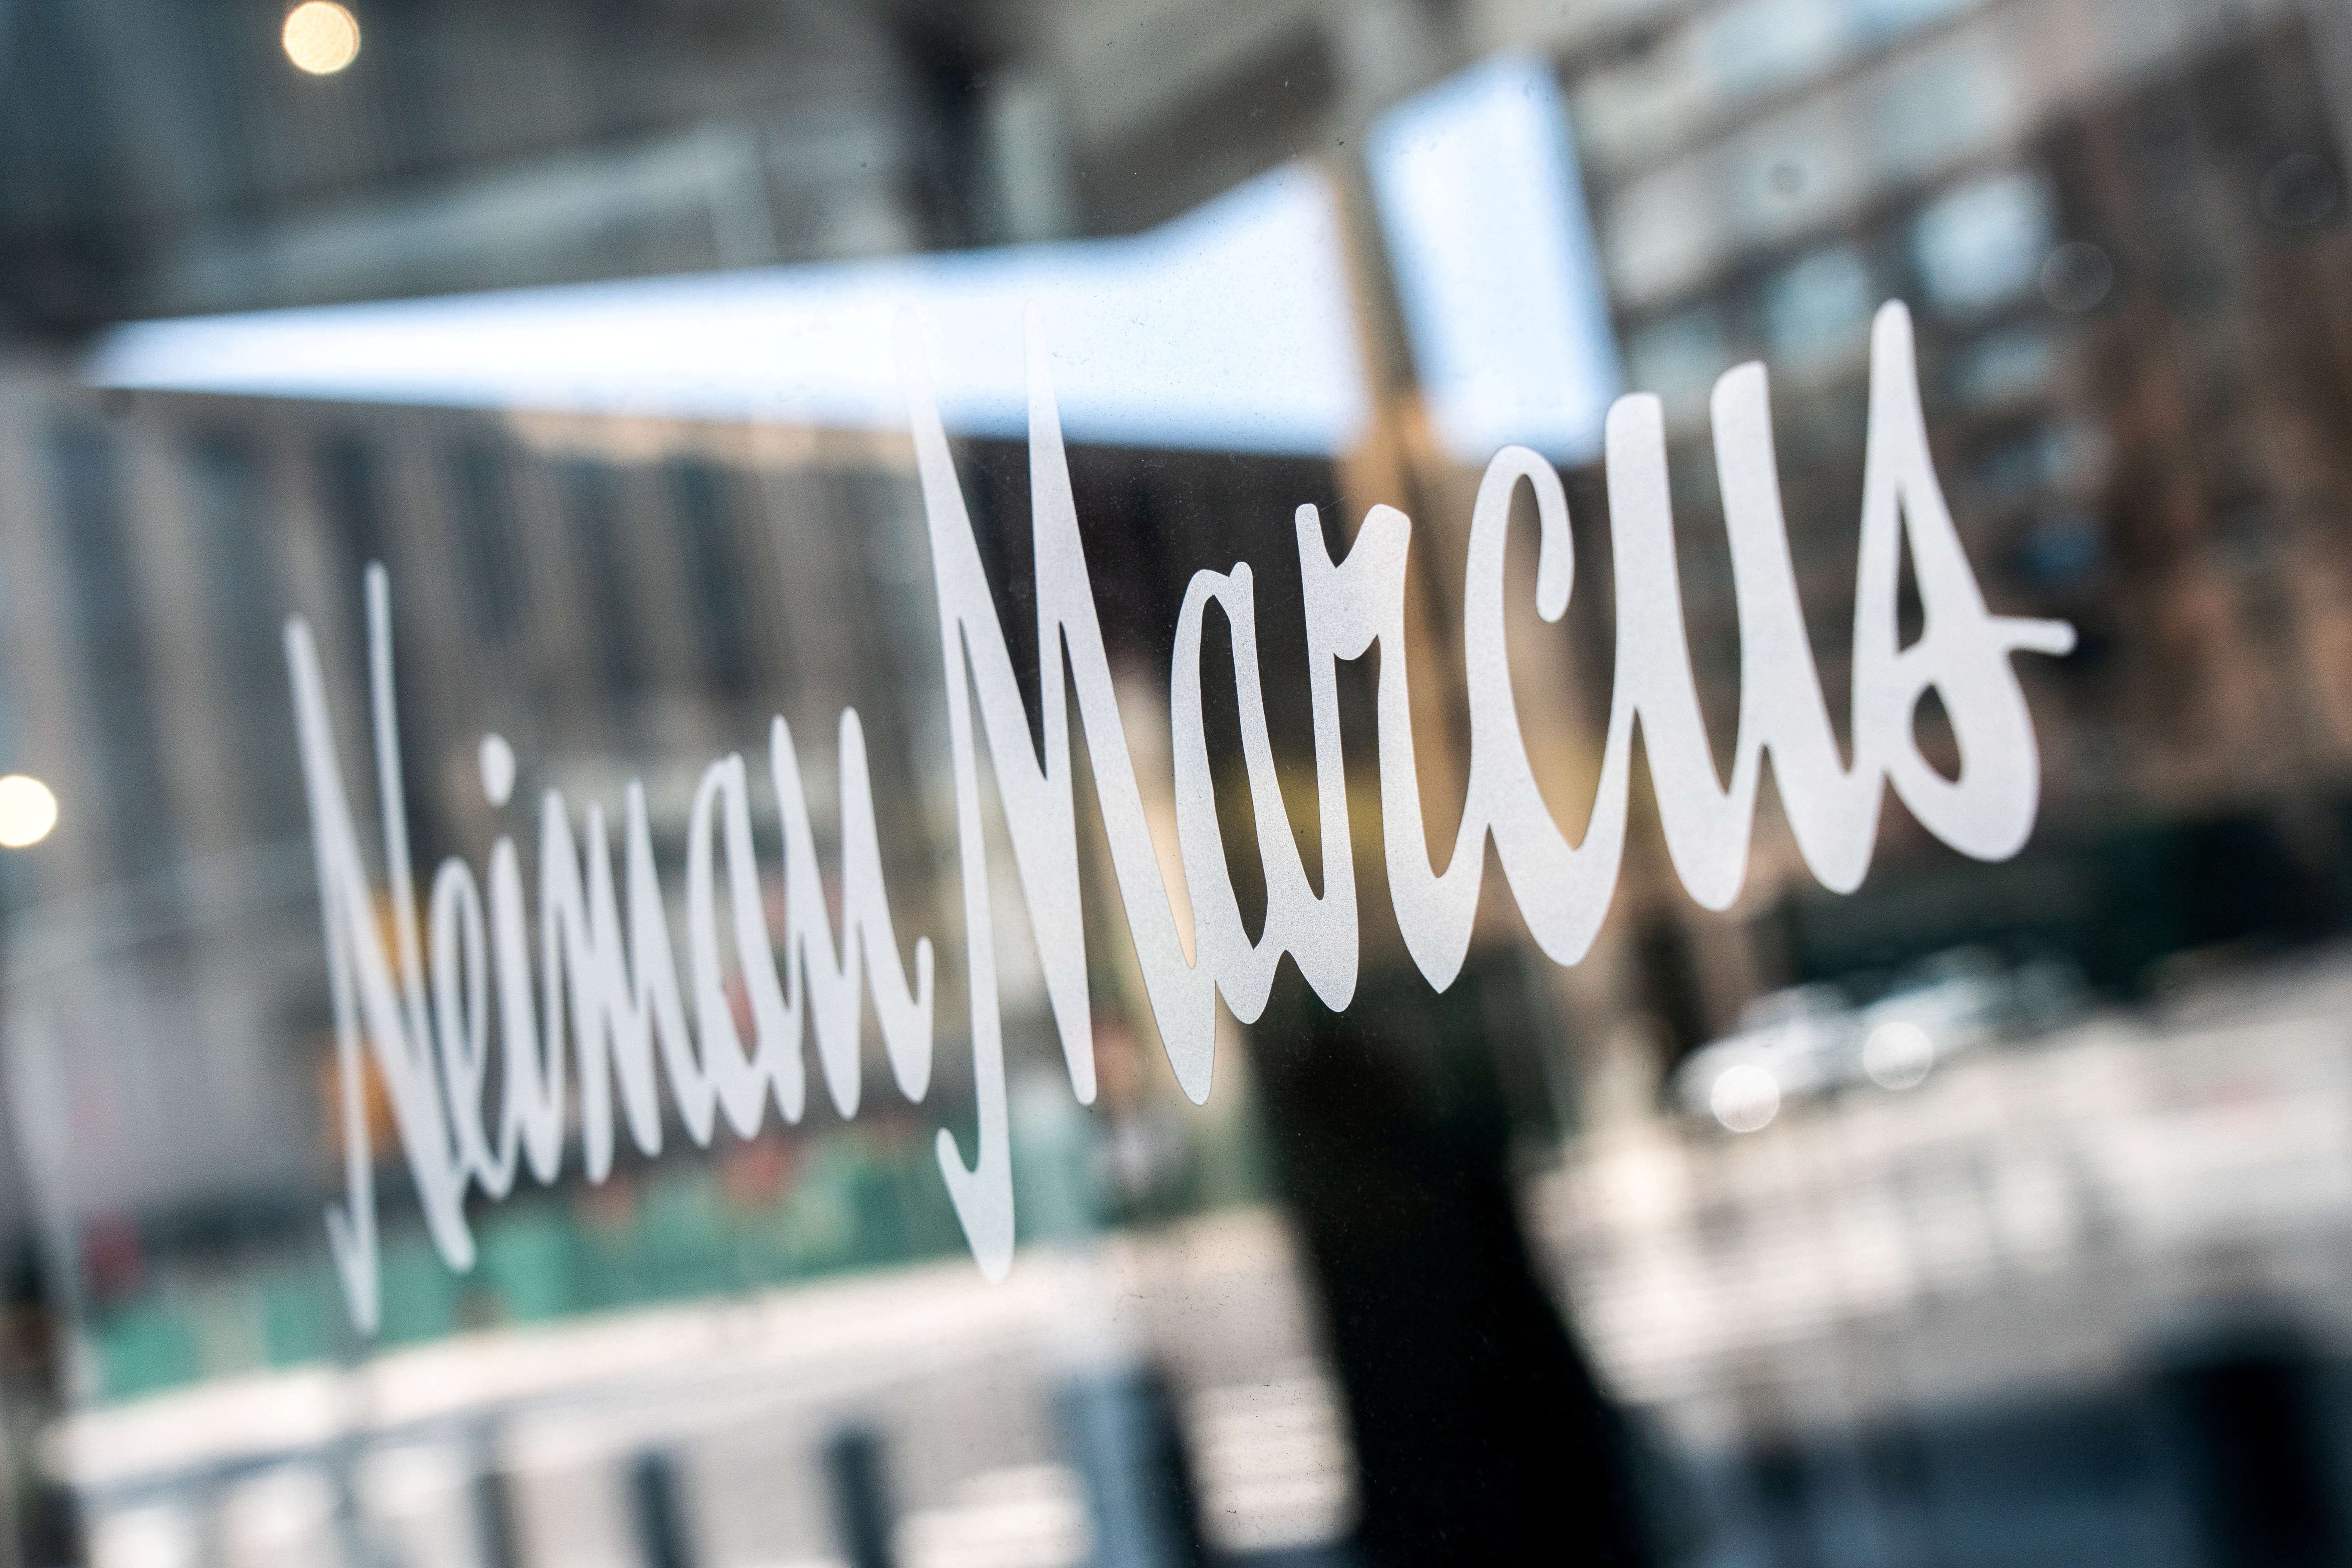 The signage outside the Neiman Marcus store is seen during the outbreak of the coronavirus disease (COVID-19) in New York City, U.S., April 19, 2020. REUTERS/Jeenah Moon/File Photo